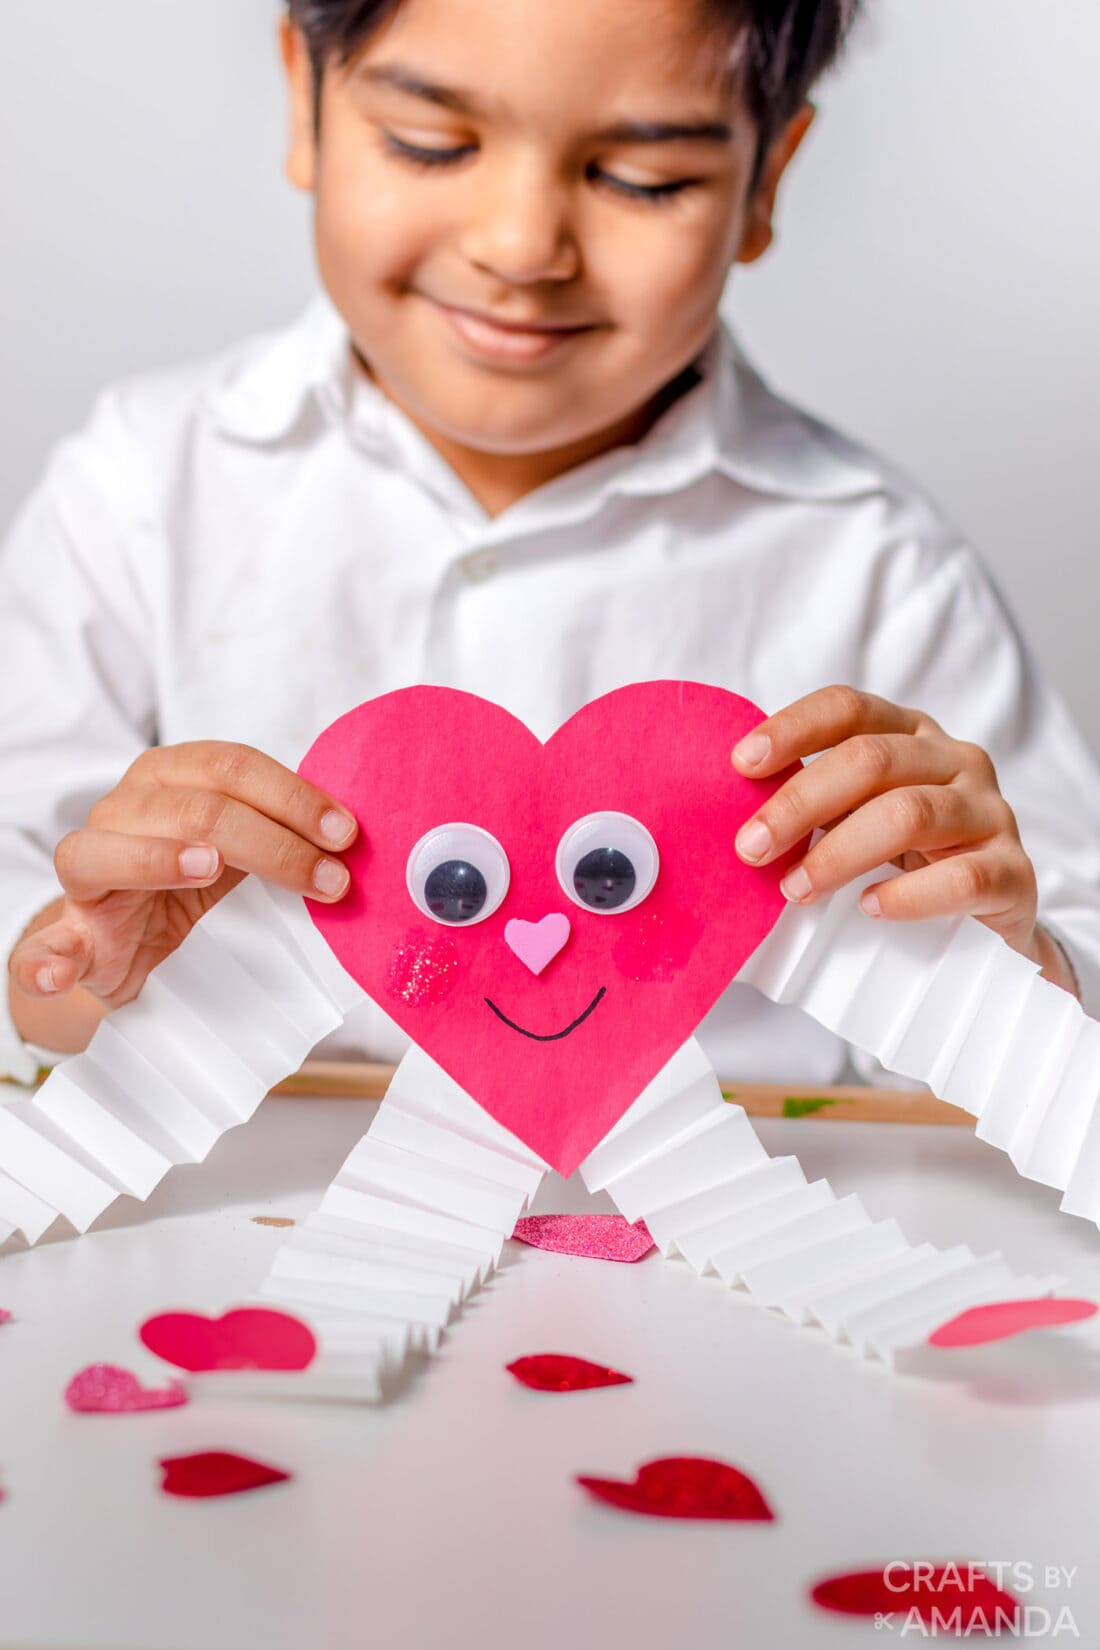 child holding paper valentine heart man with accordion arms